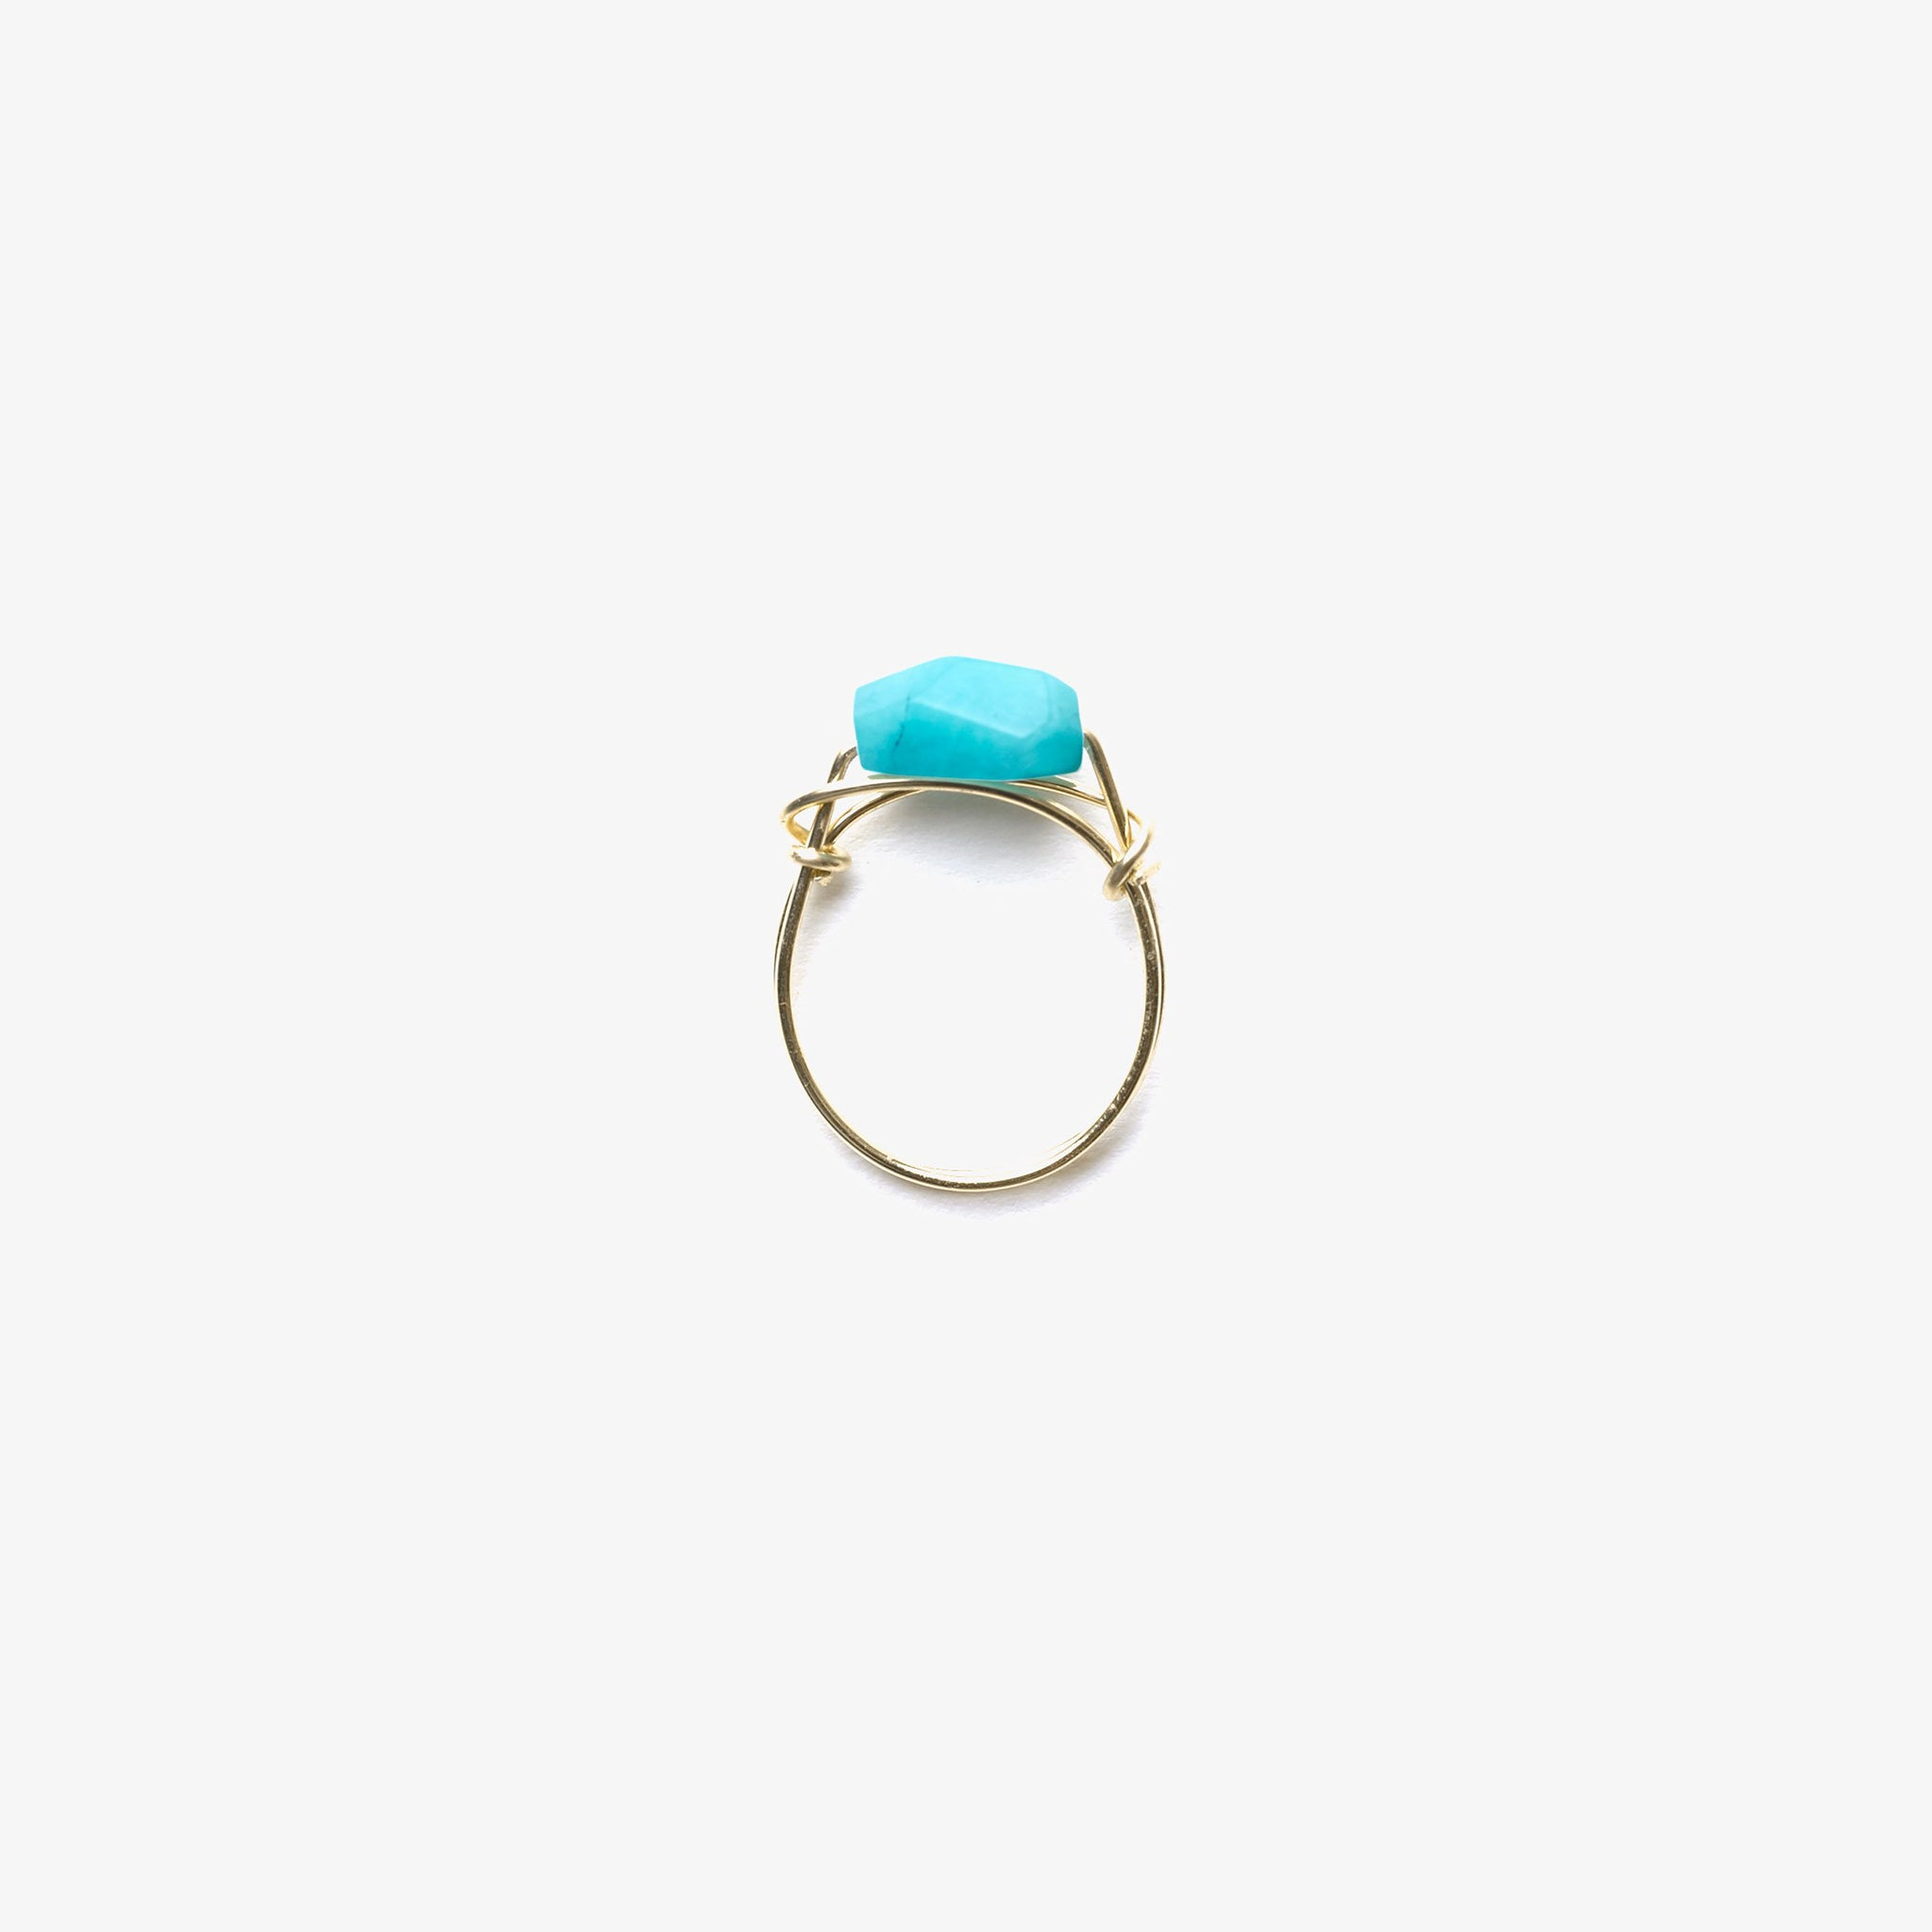 Wanderlust Life Ethically Handmade jewellery made in the UK. Minimalist gold and fine cord jewellery. handsculpted ring, amazonite